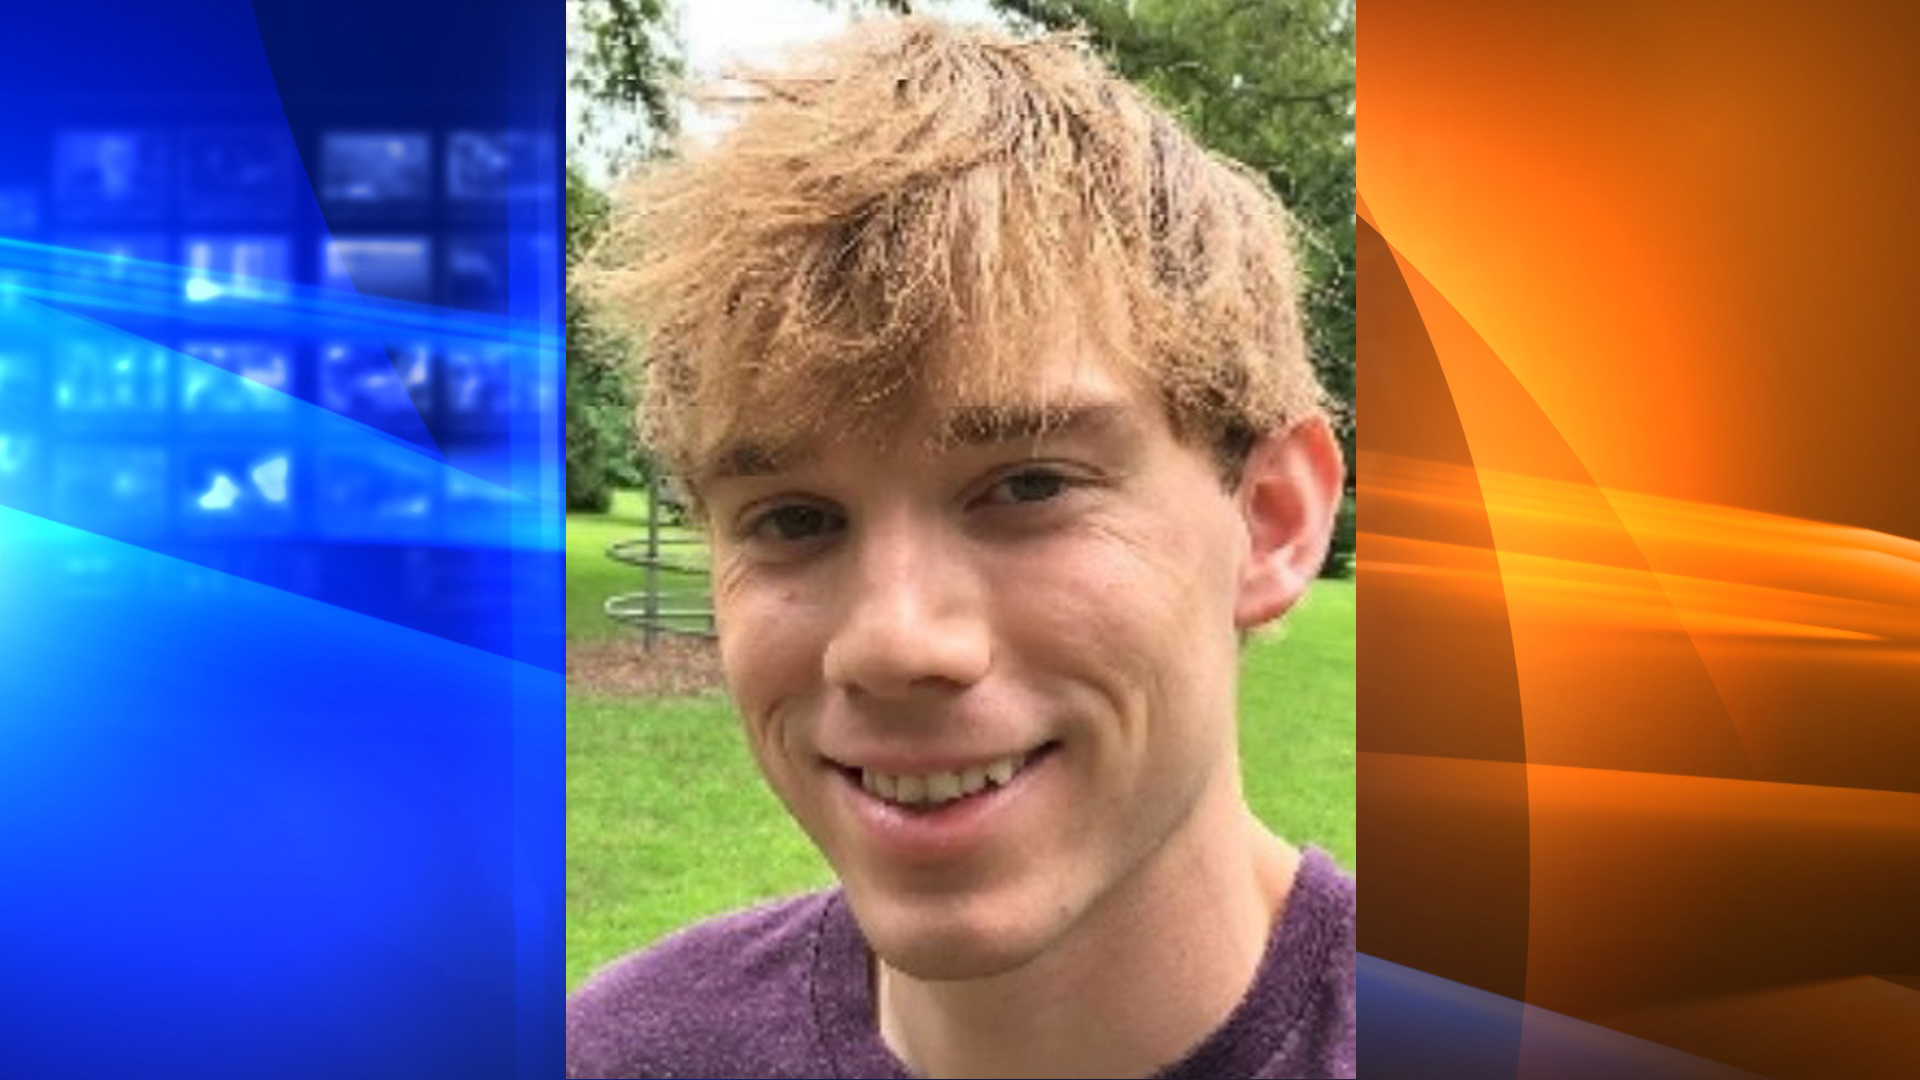 The Tennessee Bureau of Investigation released this photo of 29-year-old Travis Reinking, who is a suspect in a shooting that took place at a Waffle House in the Nashville area on April 22, 2018.